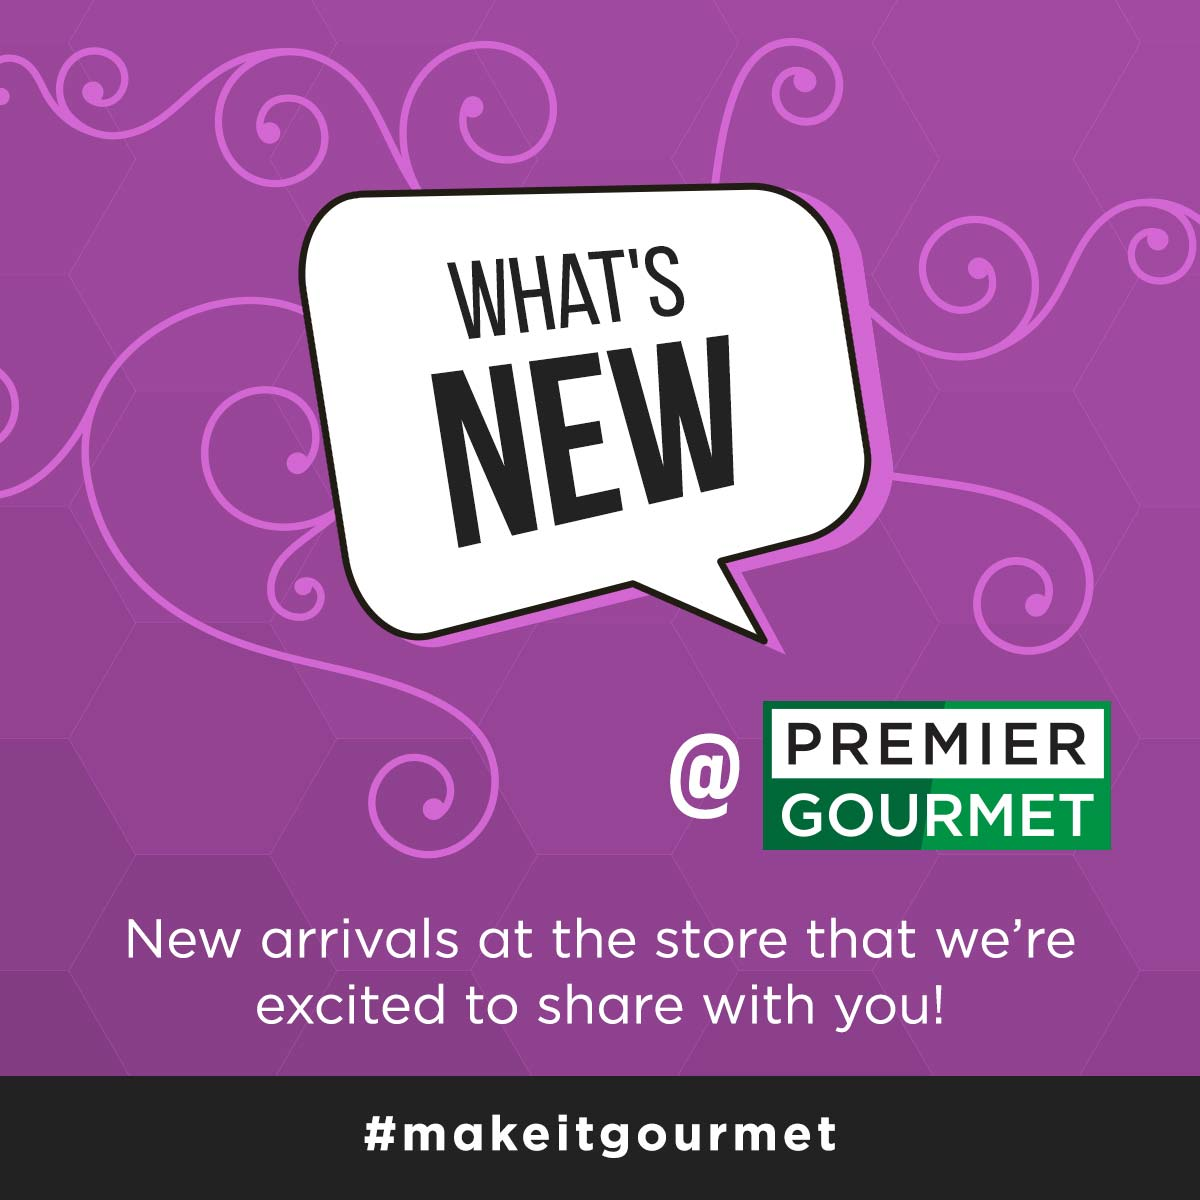 What's New at Premier Gourmet